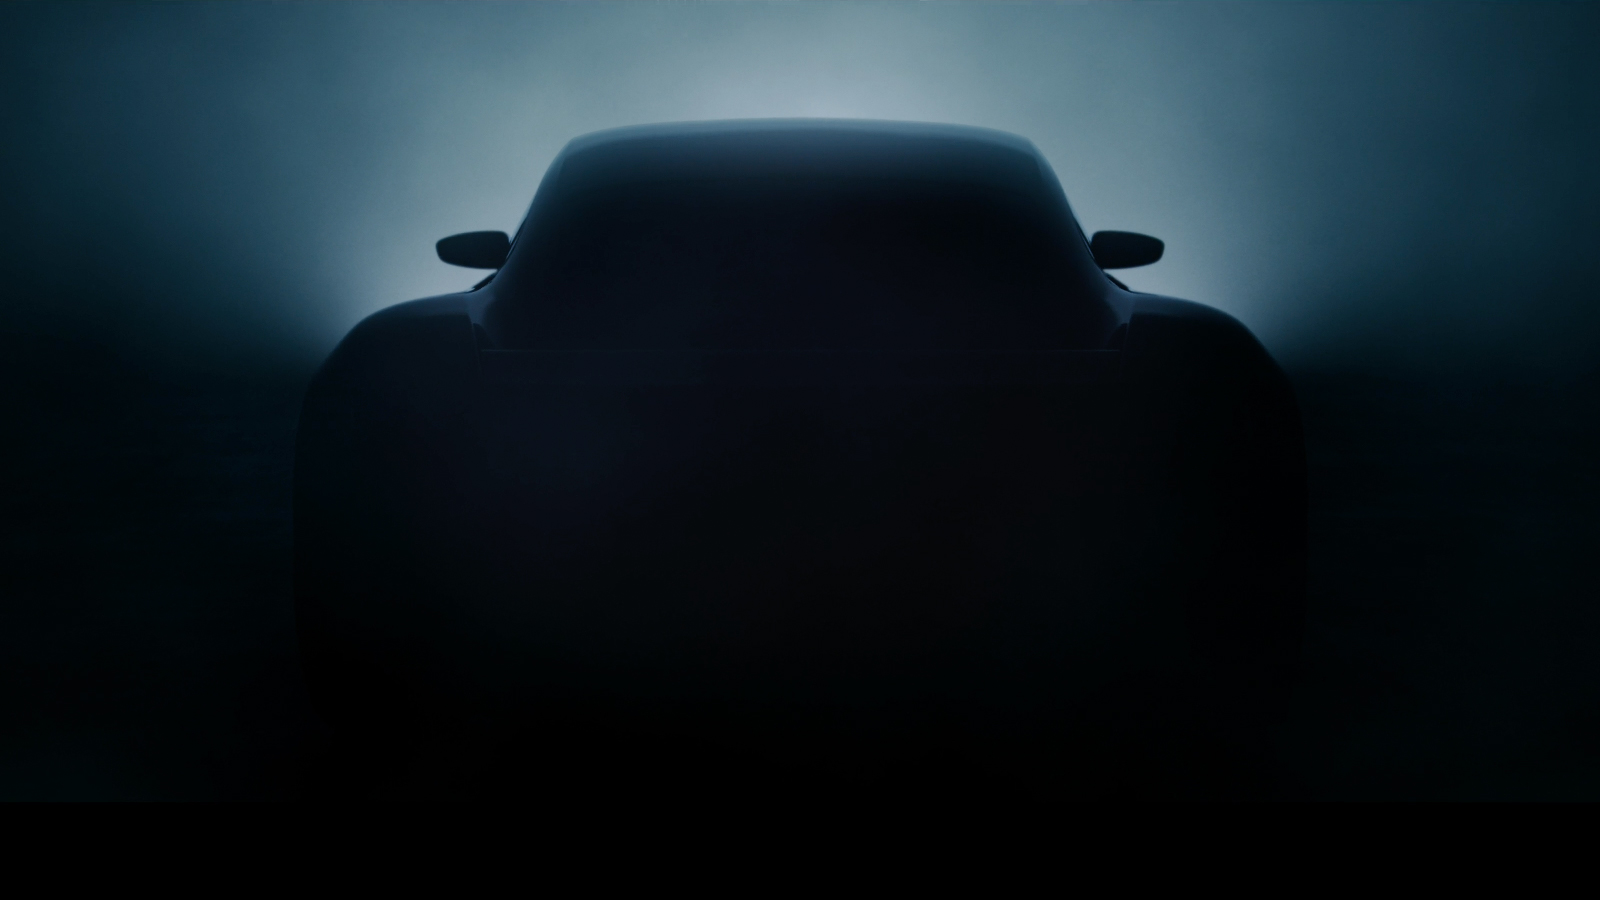 The Porsche Taycan is coming